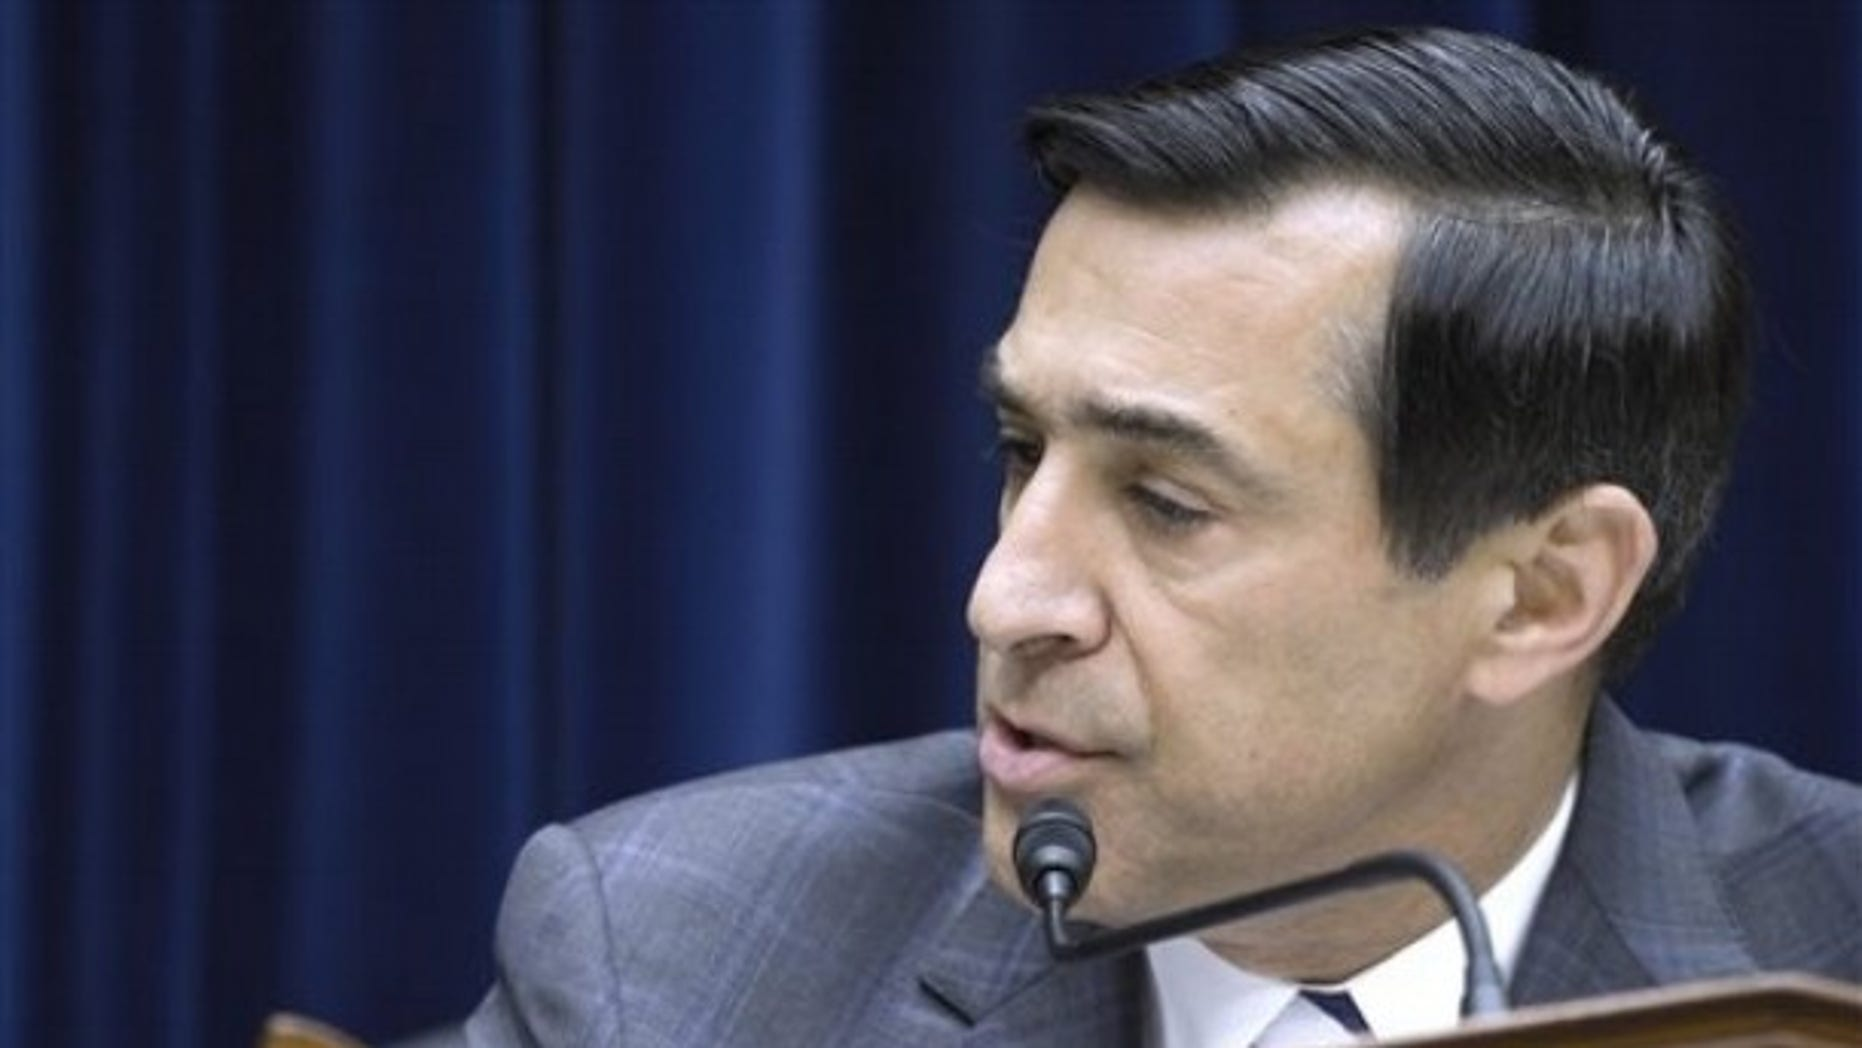 House Oversight and Government Reform Committee Chairman Rep. Darrell Issa, R-Calif. , speaks on Capitol Hill in Washington, Thursday, June 2, 2011,